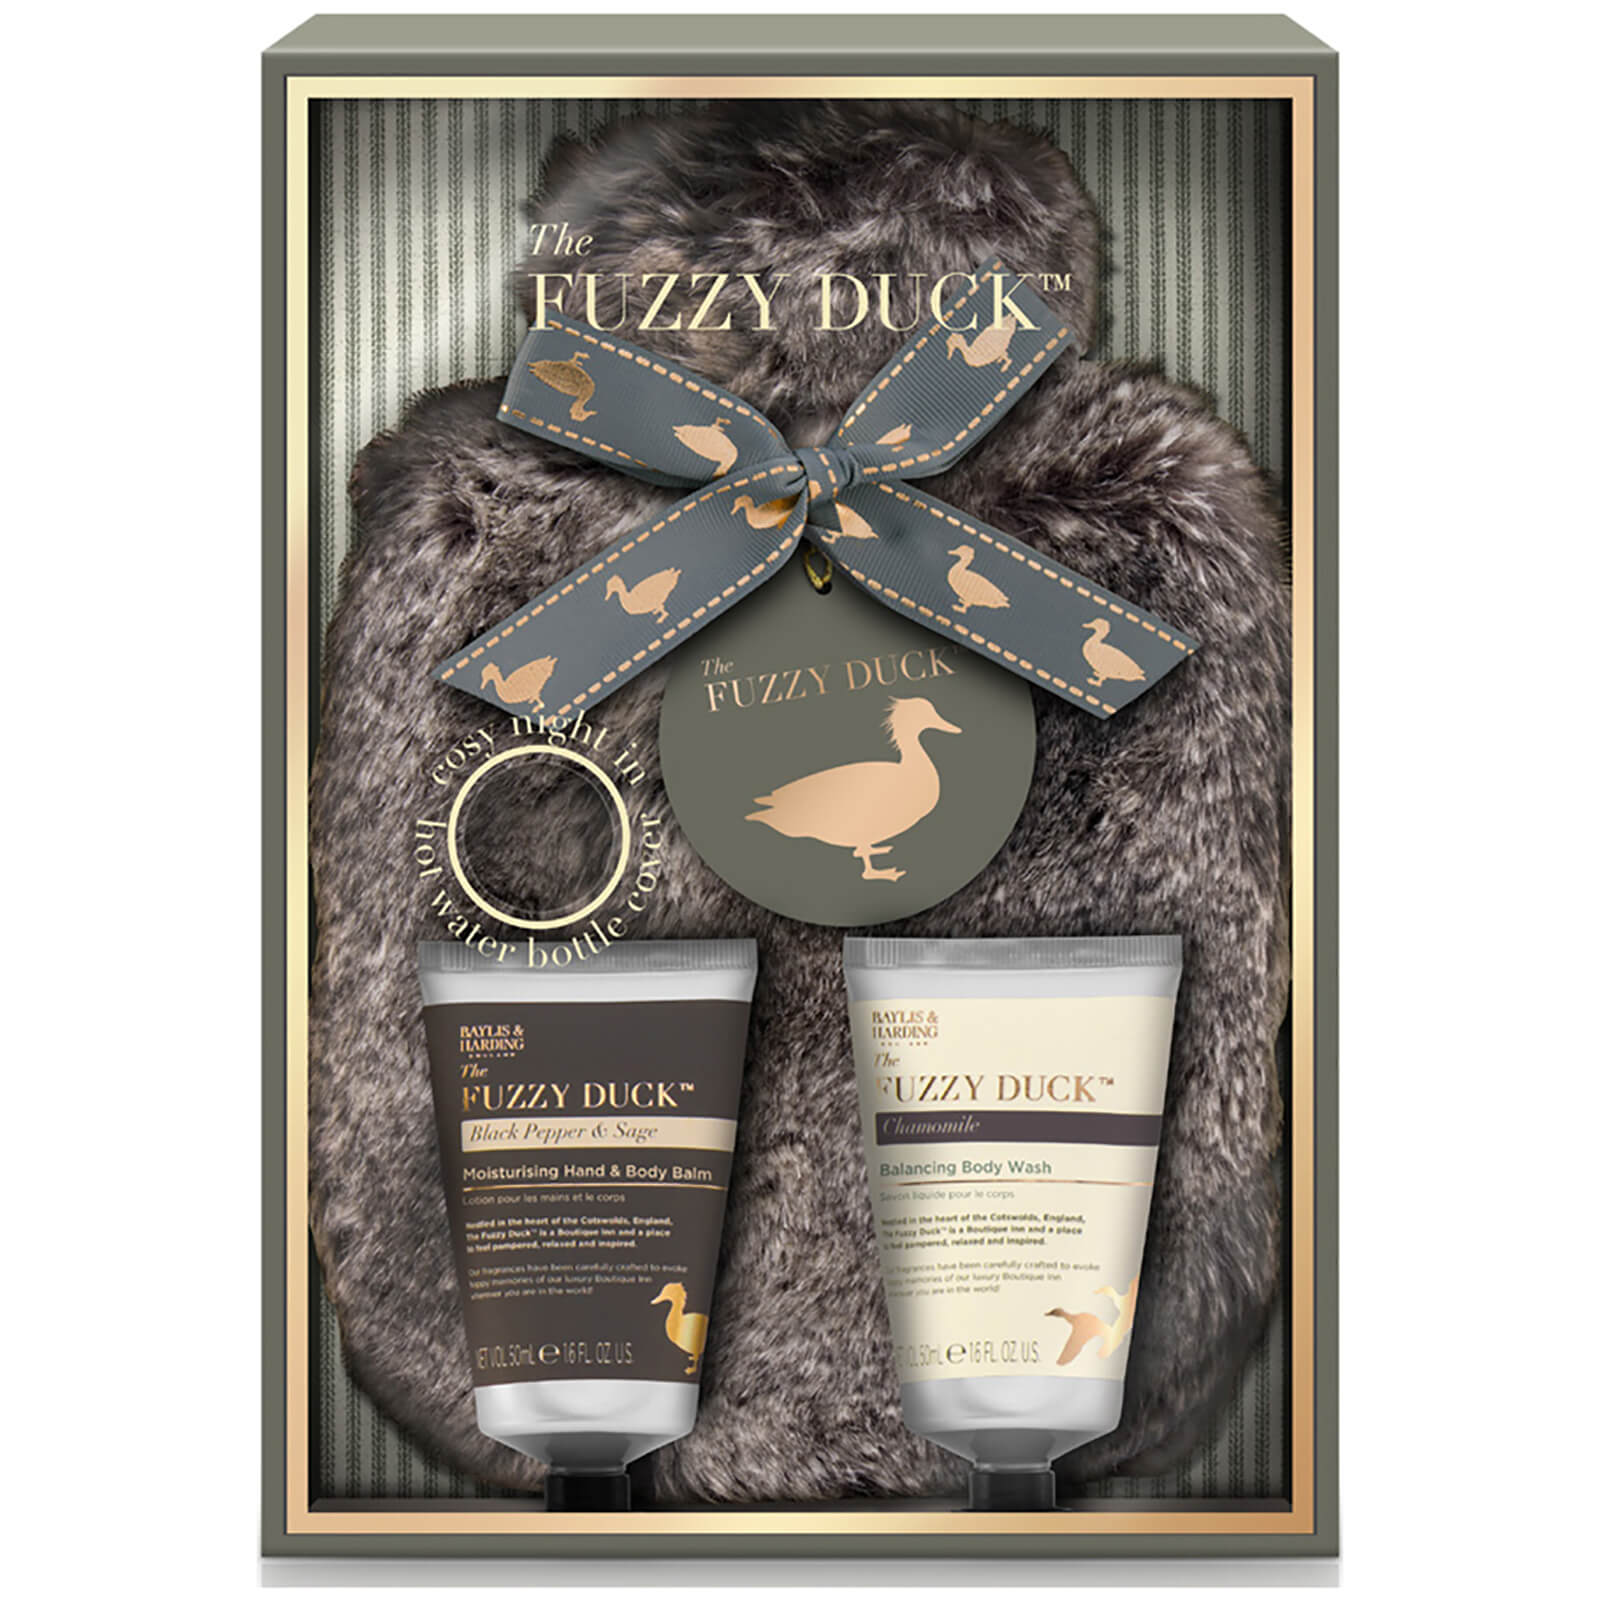 Water Bottle Set: Baylis & Harding Fuzzy Duck Black Pepper & Sage 3 Piece